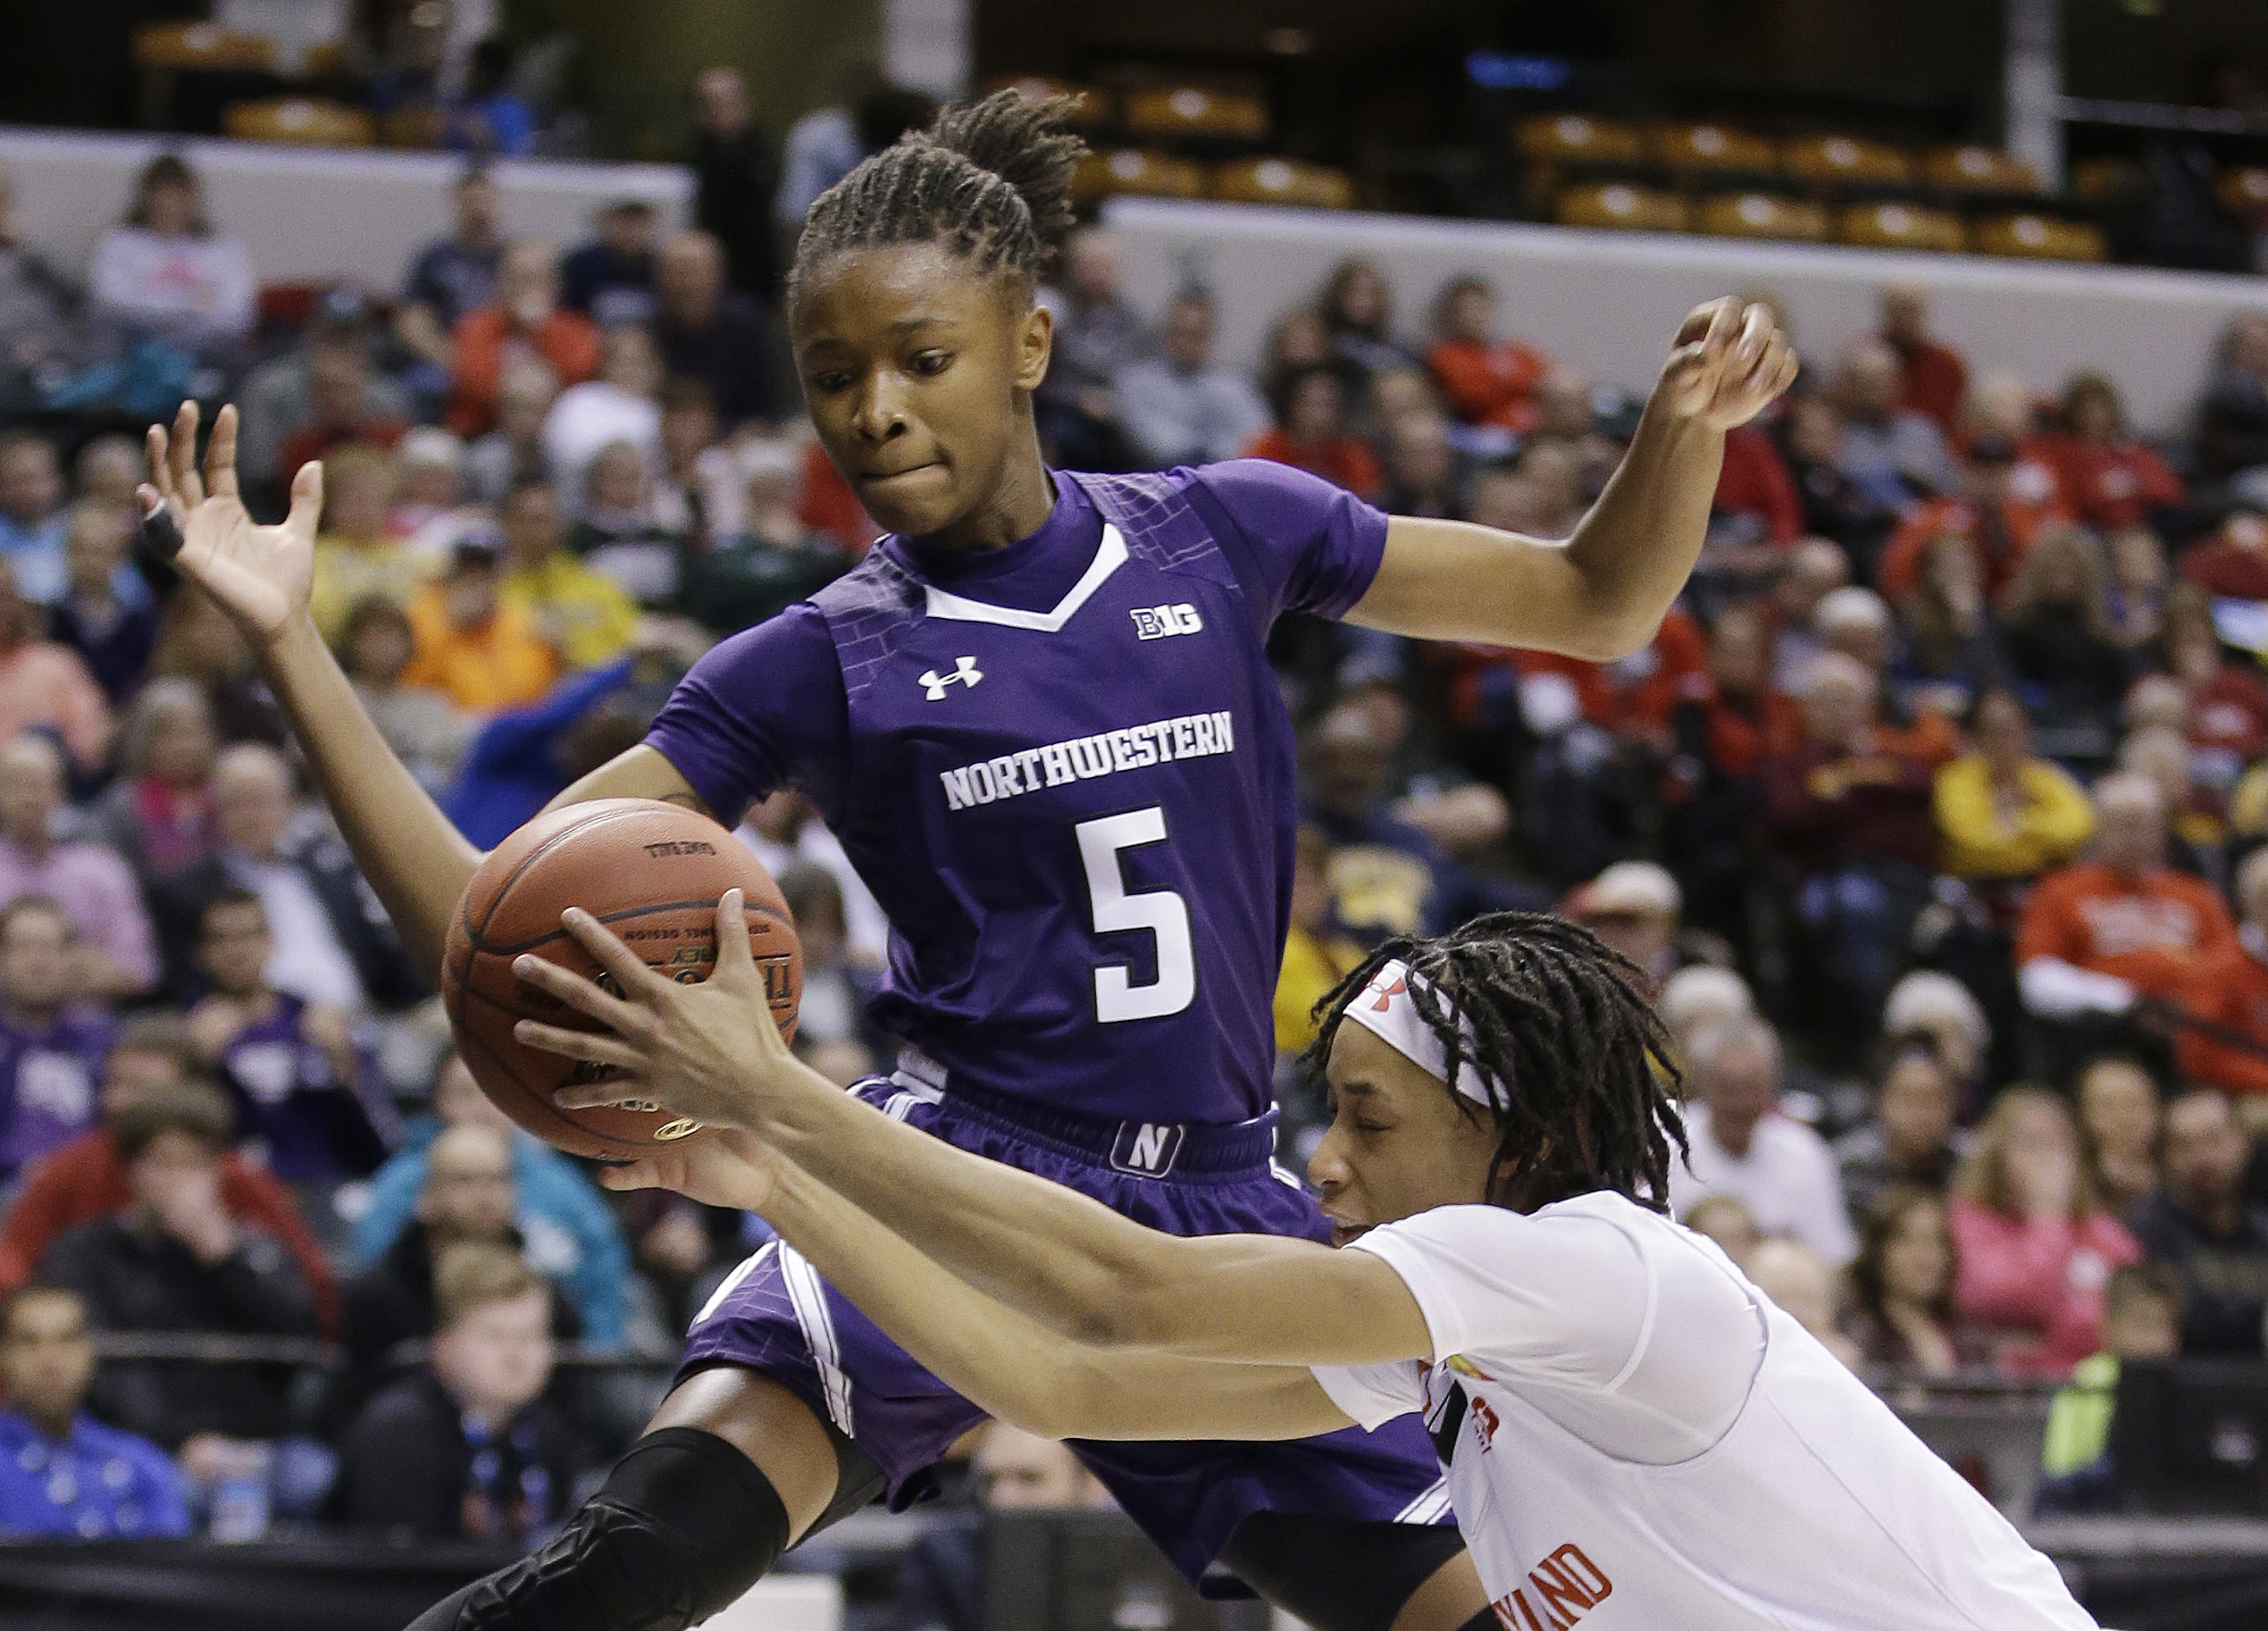 FILE - In this March 5, 2016, file photo, Maryland's Brene Moseley (3) and Northwestern's Jordan Hankins (5) go for a loose ball during an NCAA college basketball game at the Big Ten Conference tournament in Indianapolis. Hankins has been found dead in he